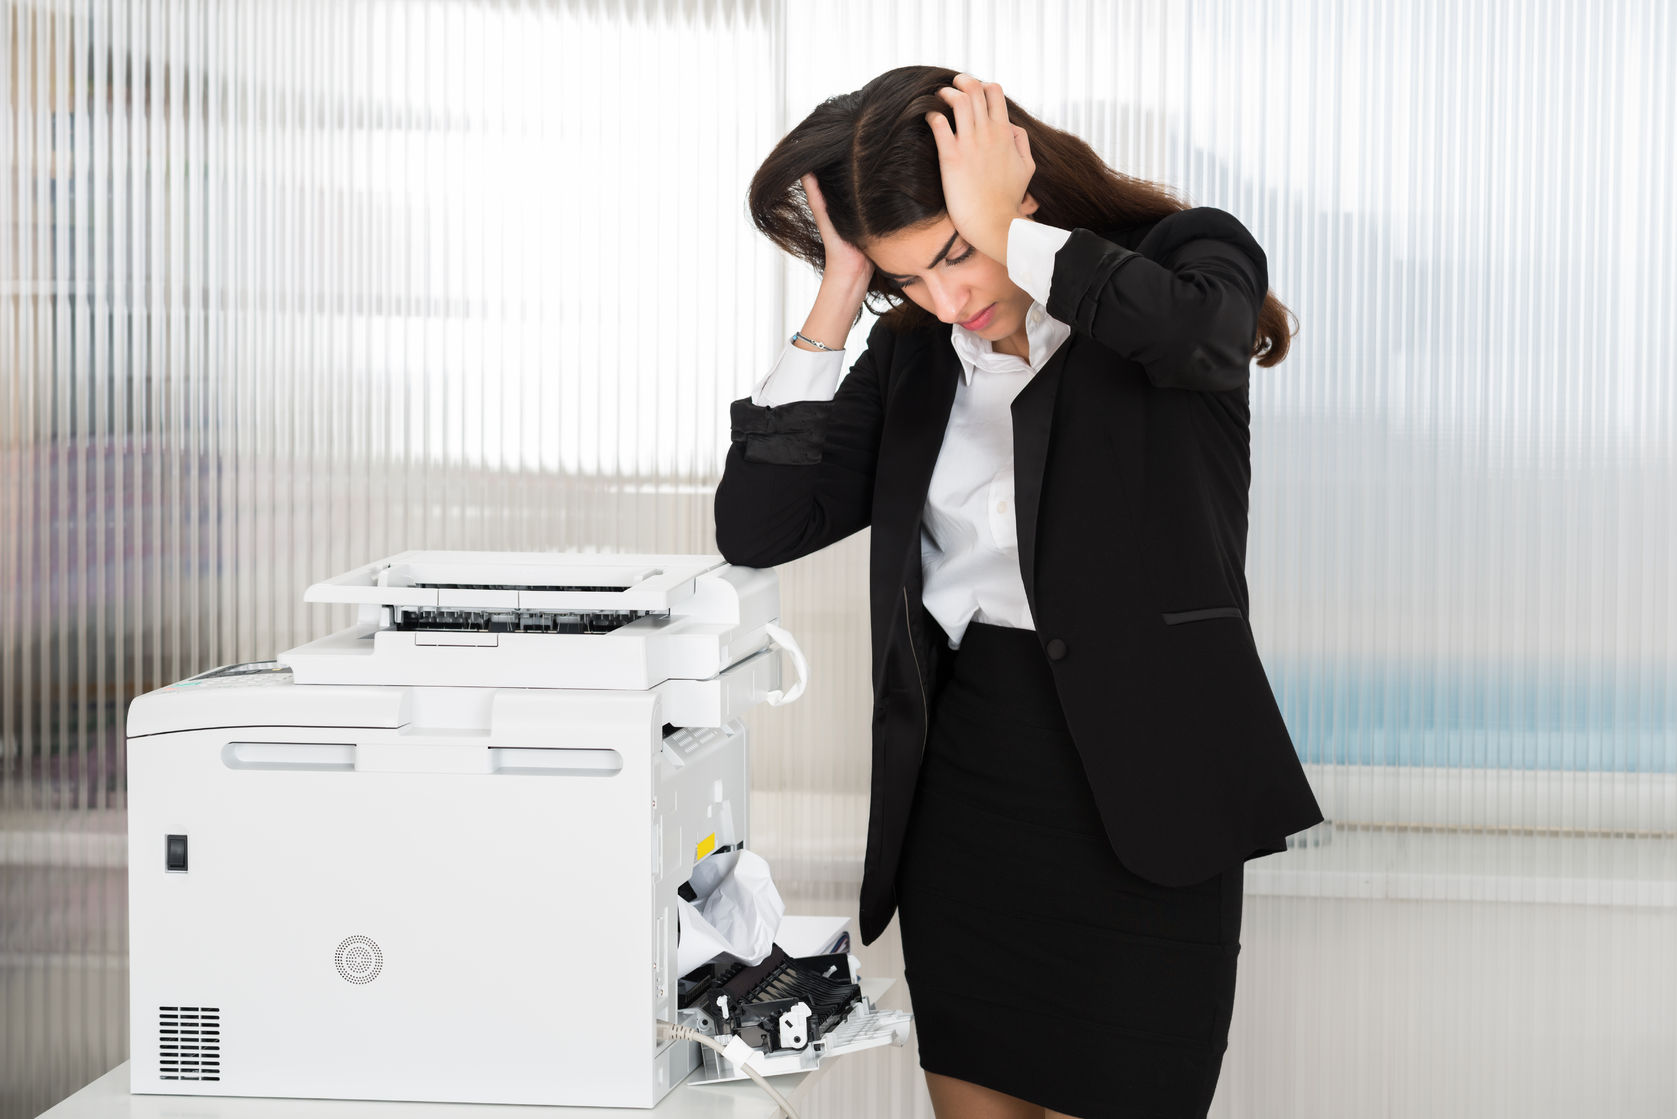 Broken Laser Printer Woman with paper jam